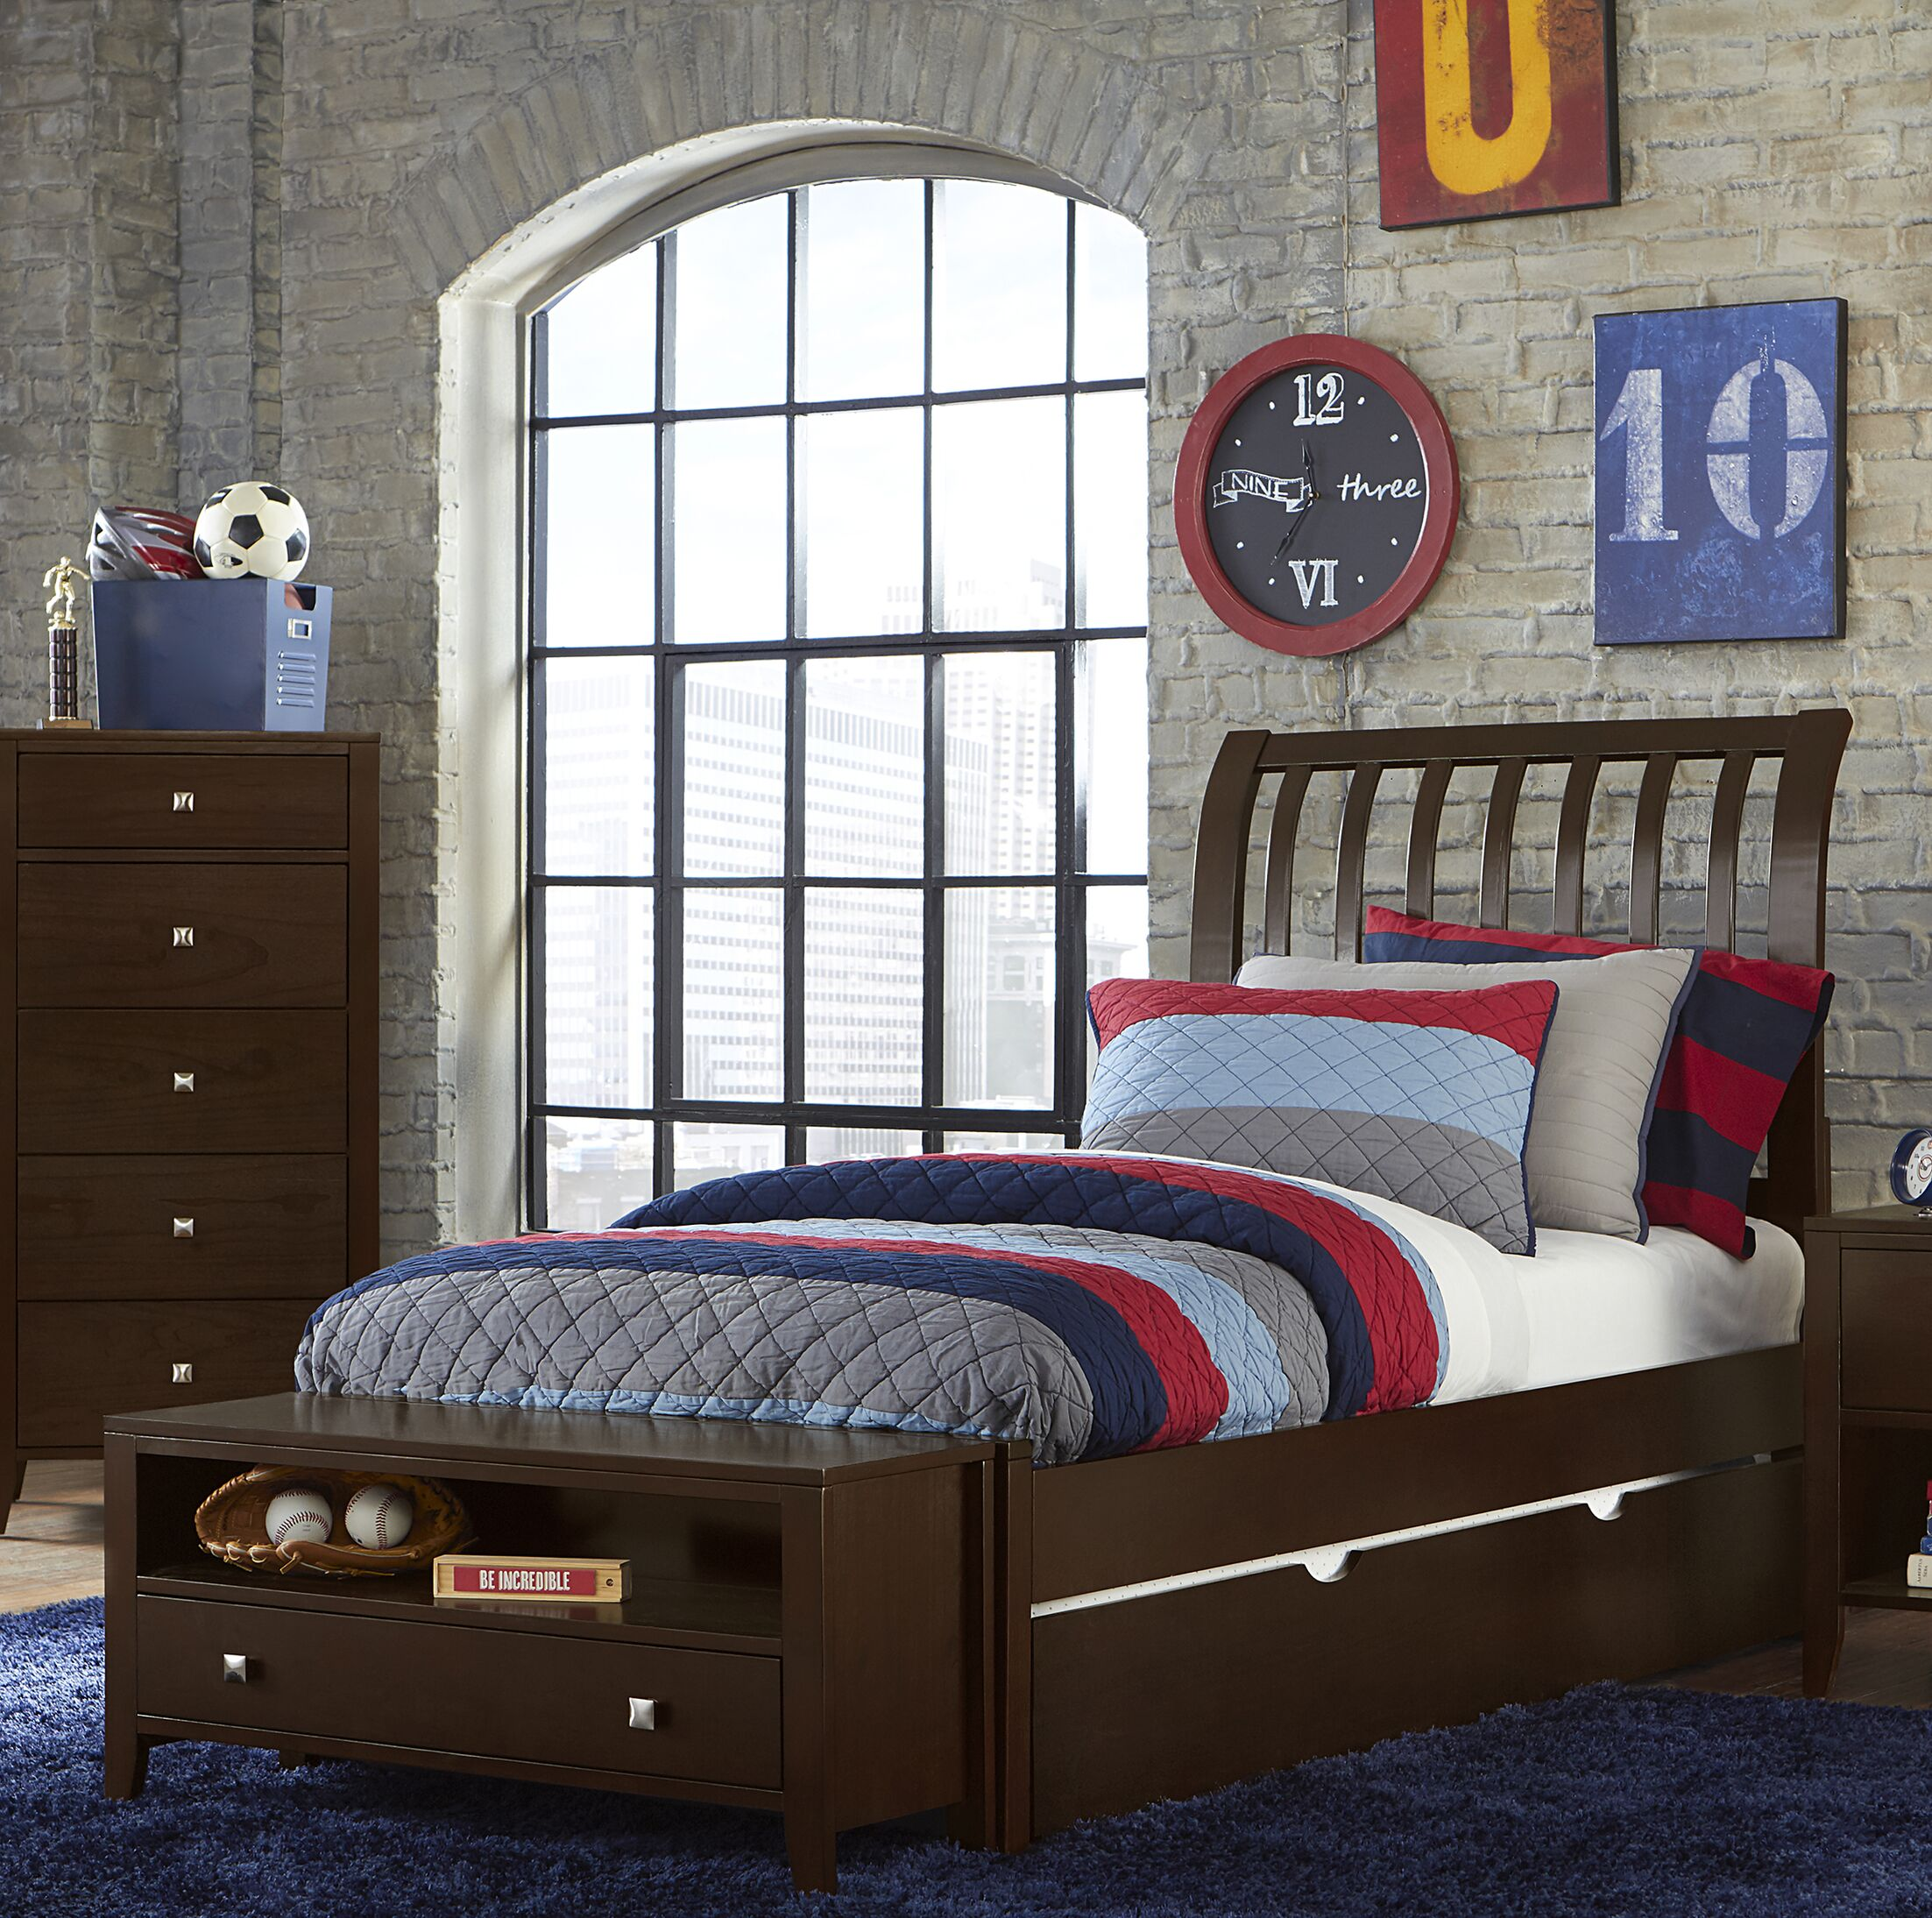 Granville Rake Sleigh Bed with Trundle Color: Chocolate, Size: Full